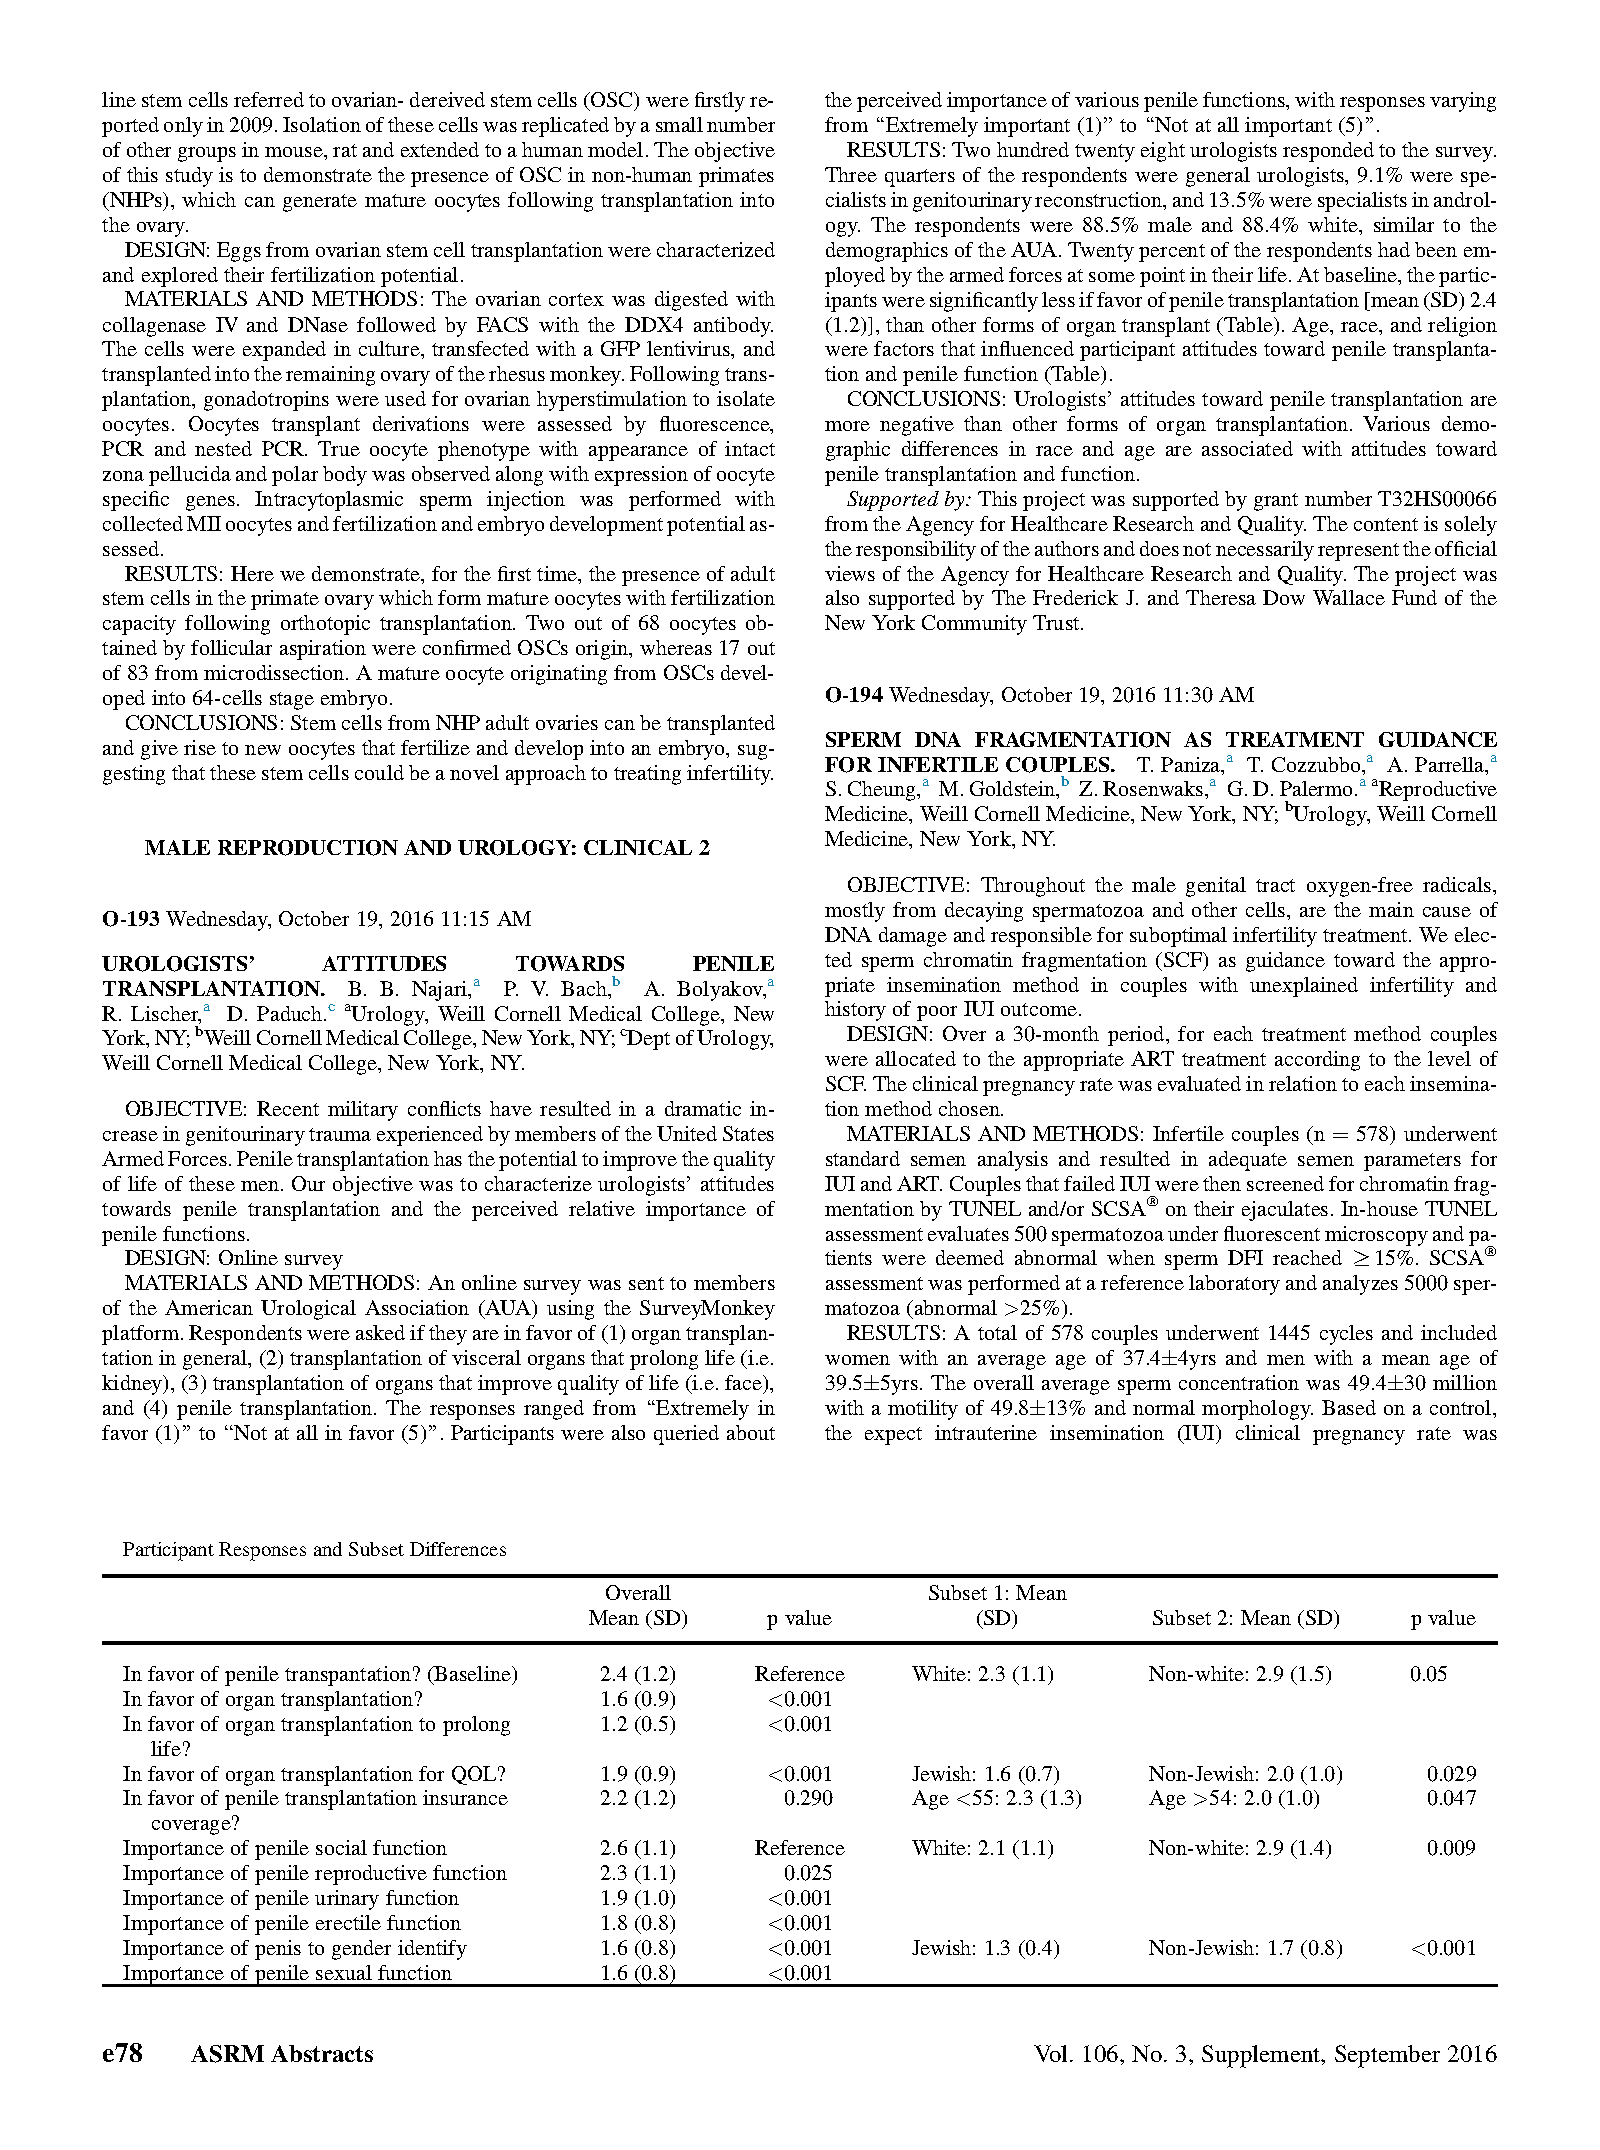 SPERM DNA FRAGMENTATION AS TREATMENT GUIDANCE_Page_1.png